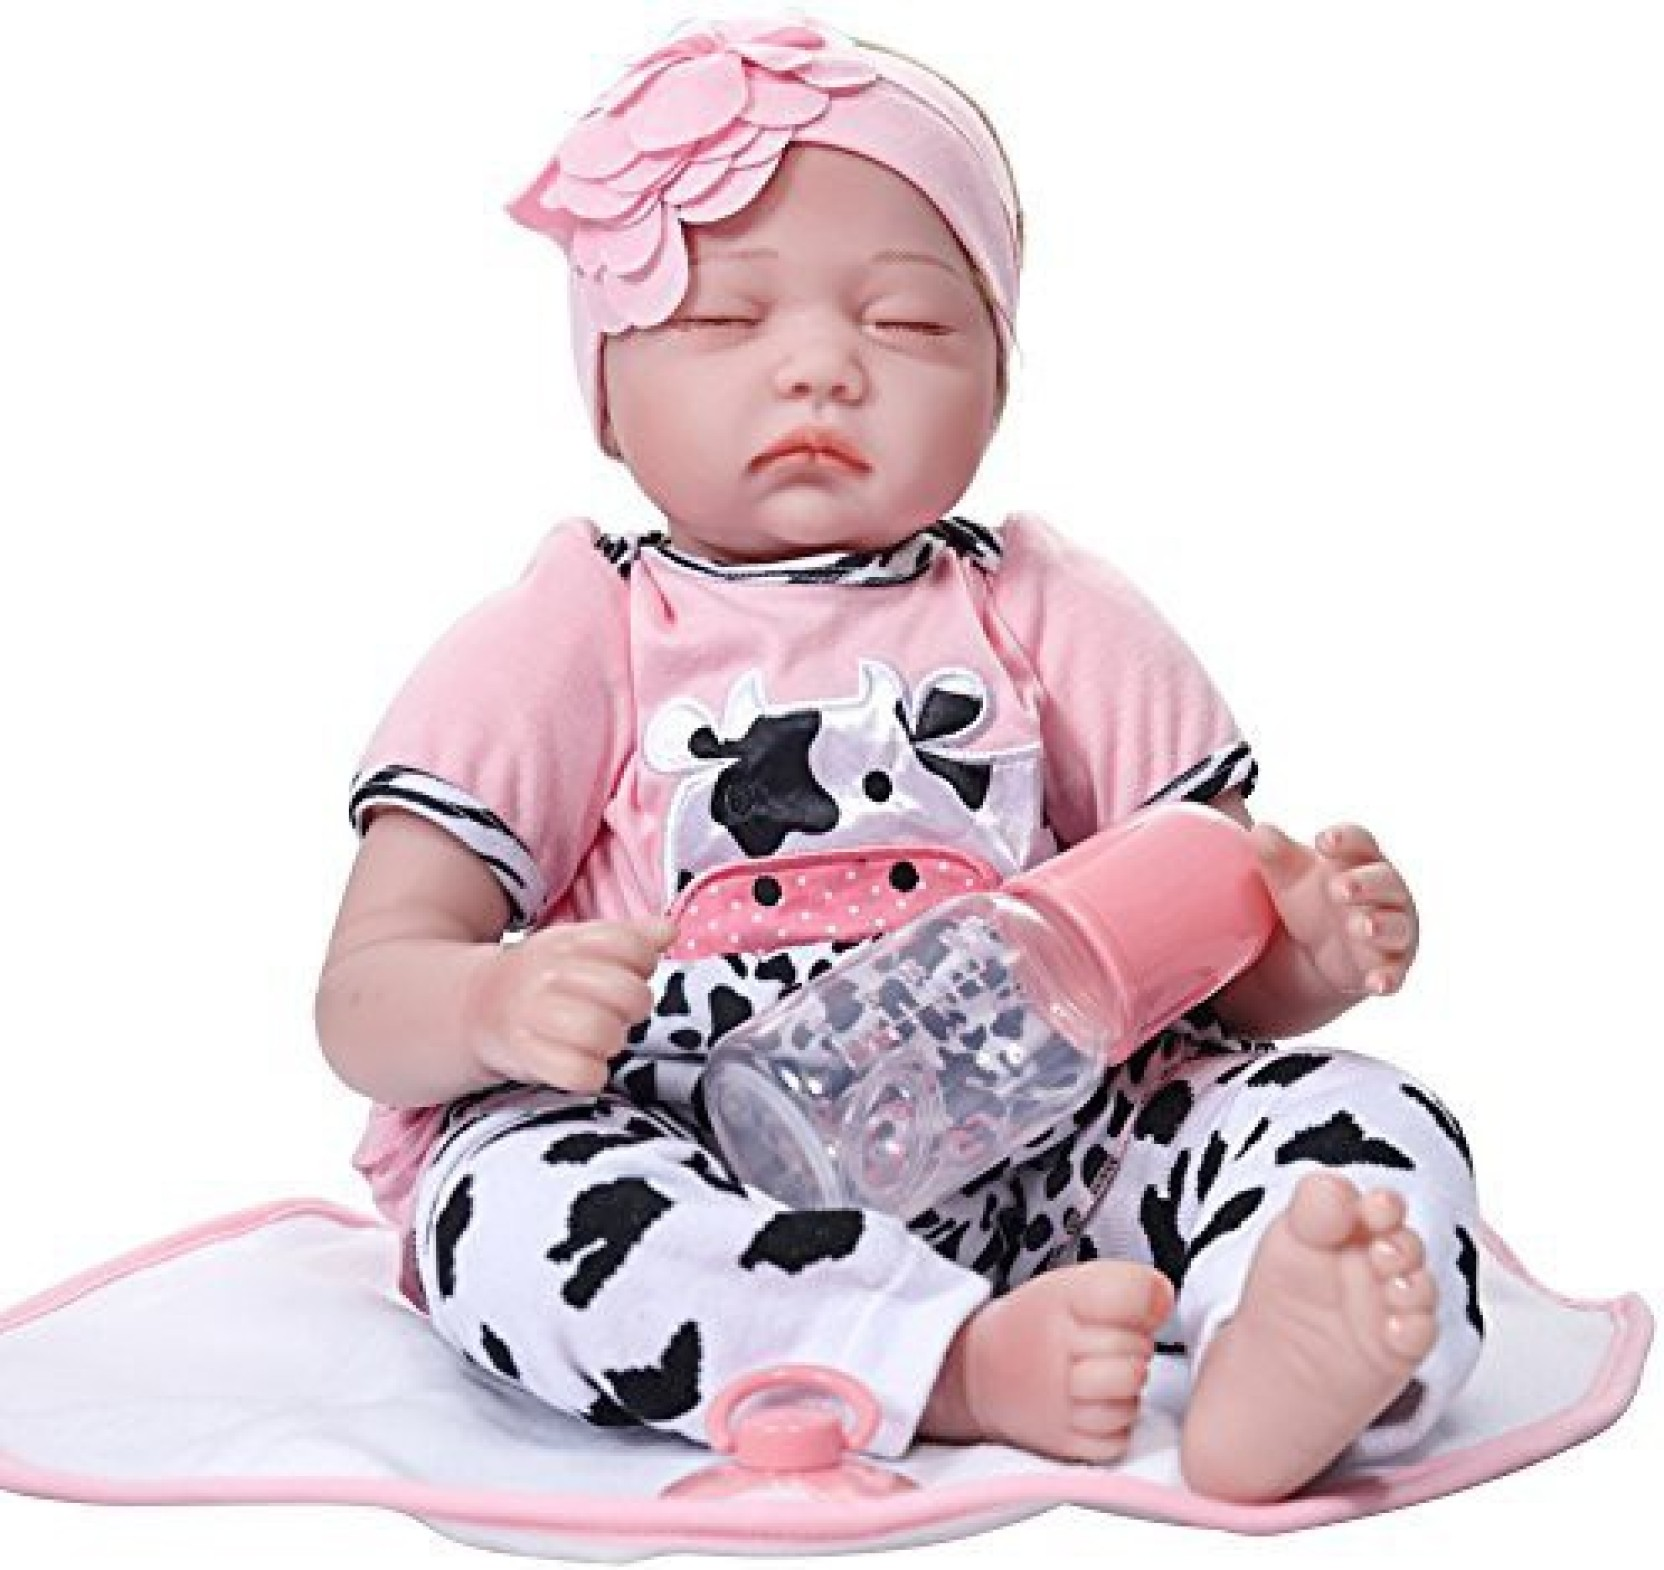 174be6924 Generic Lifelike Reborn Baby Doll Closed Eye Simulate Silicone Accompany  Sleeping Doll Toy For Kids Girls Boys Play House Games Toddlers (Multicolor)